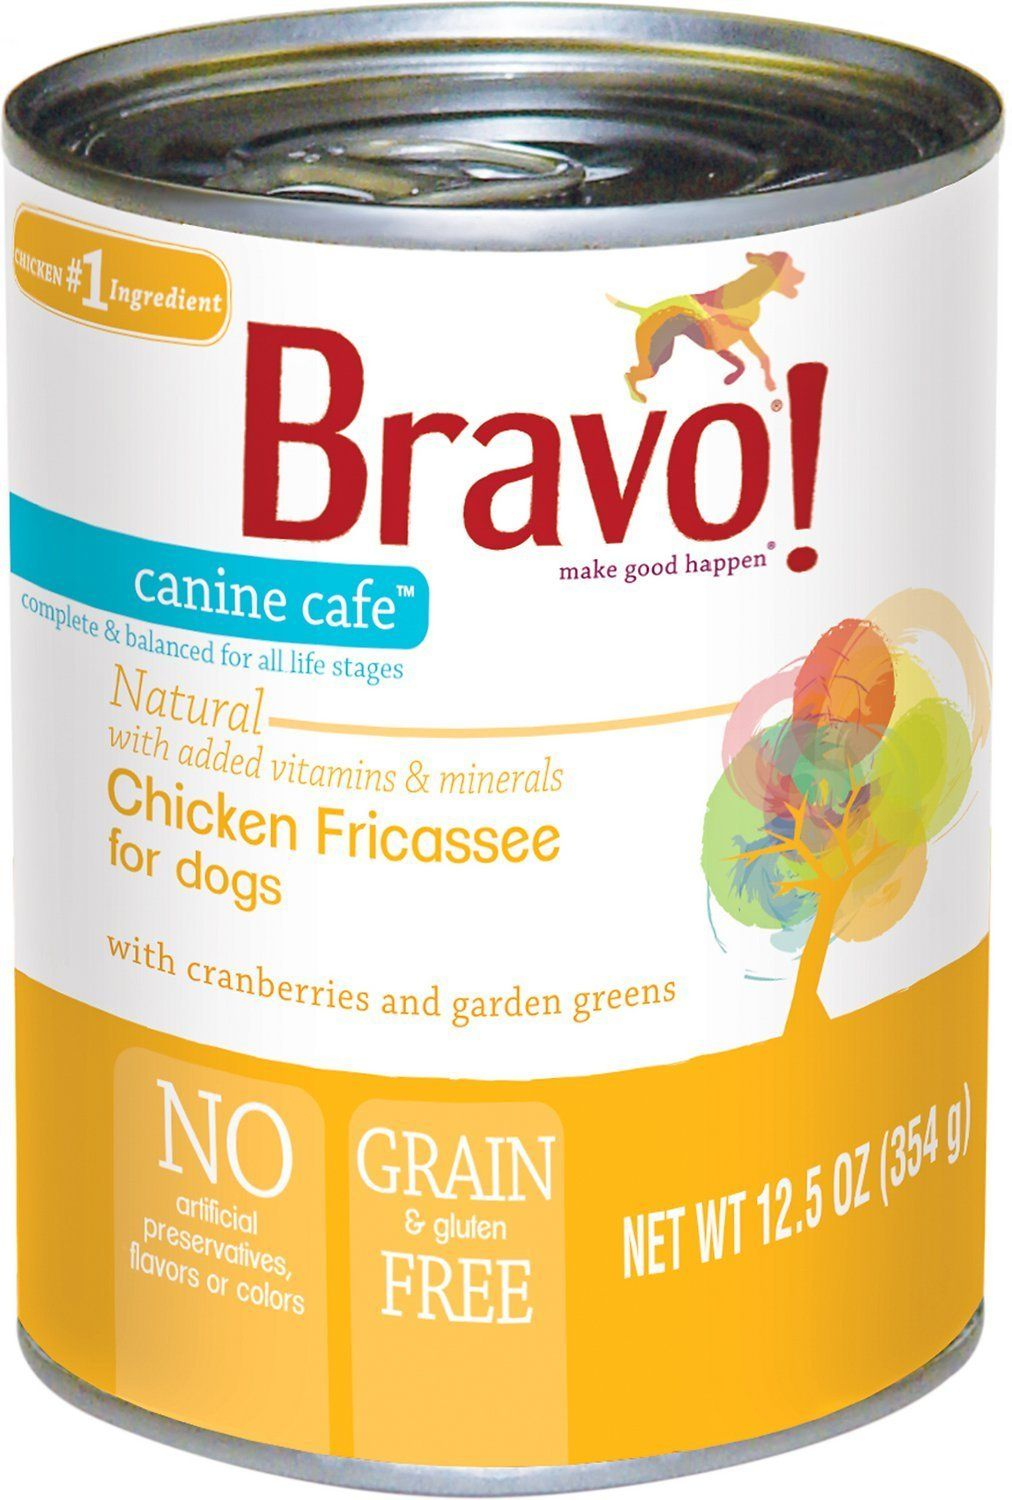 (Case of 12) Bravo! Canine Cafe Chicken Fricassee Canned